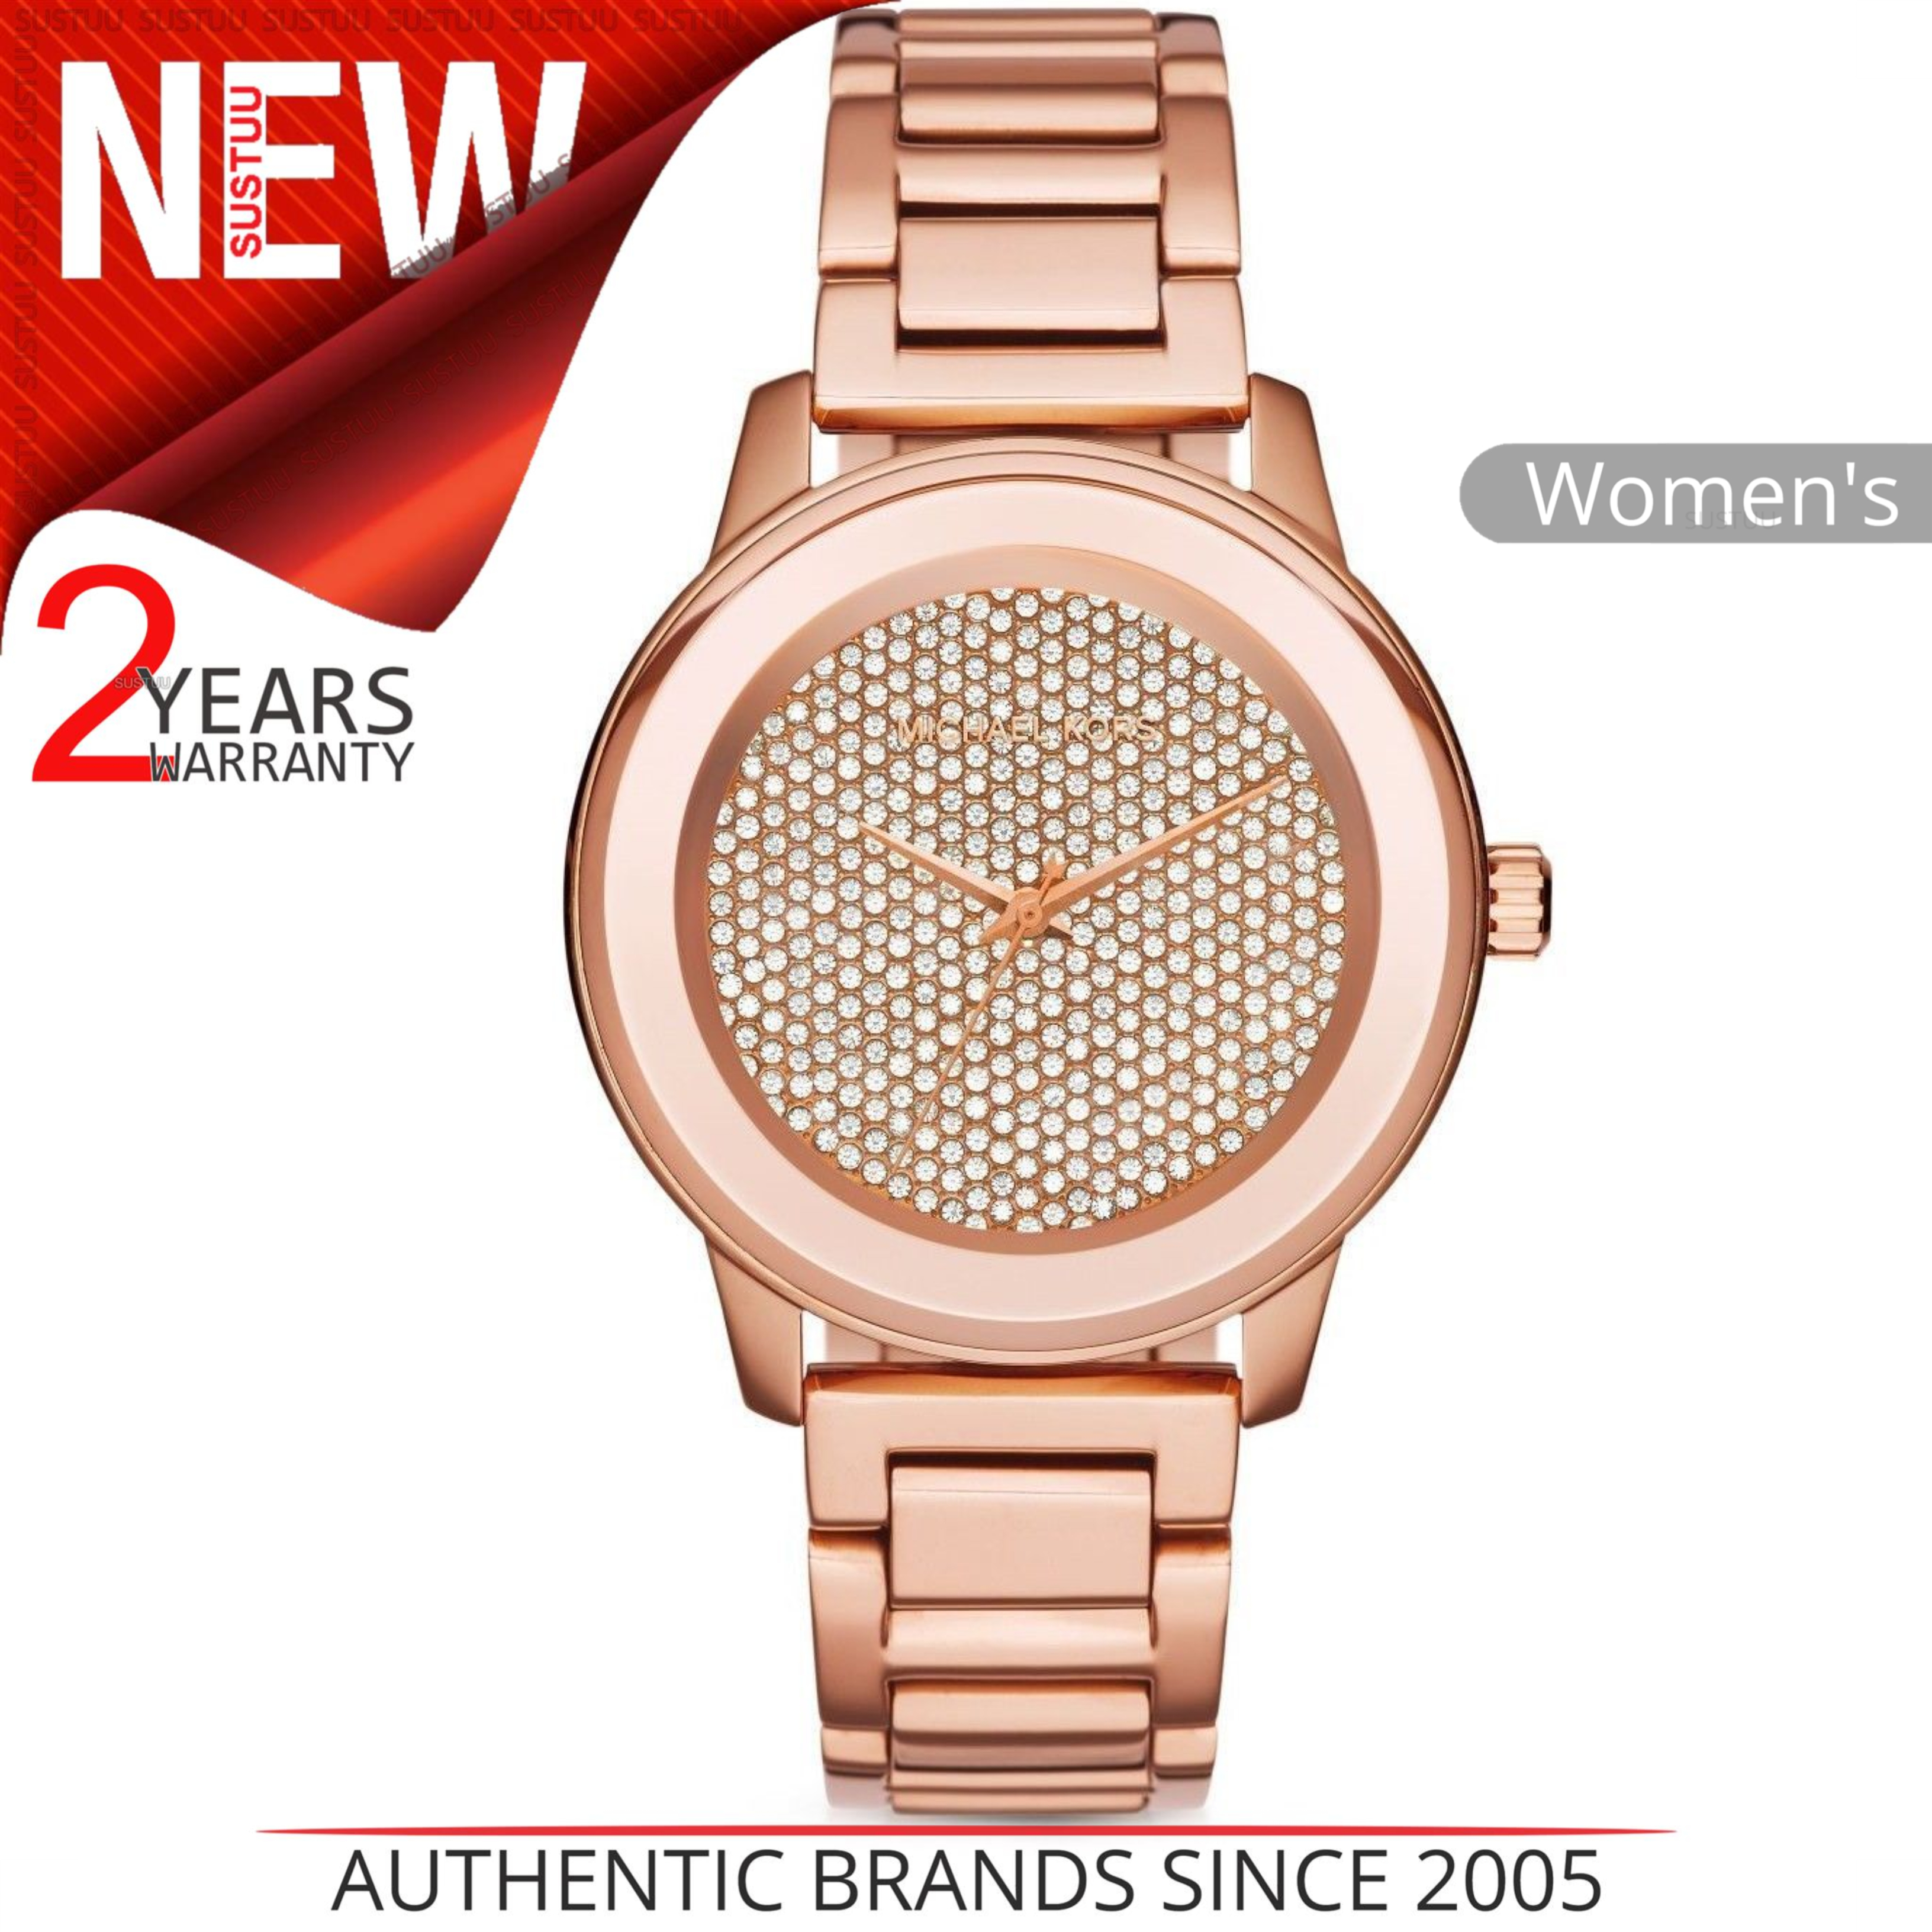 bb6fc10d70121 Details about Michael Kors Kinley Women Watch MK6210│Crystal Pave Rose Gold  Dial│Bracelet Band